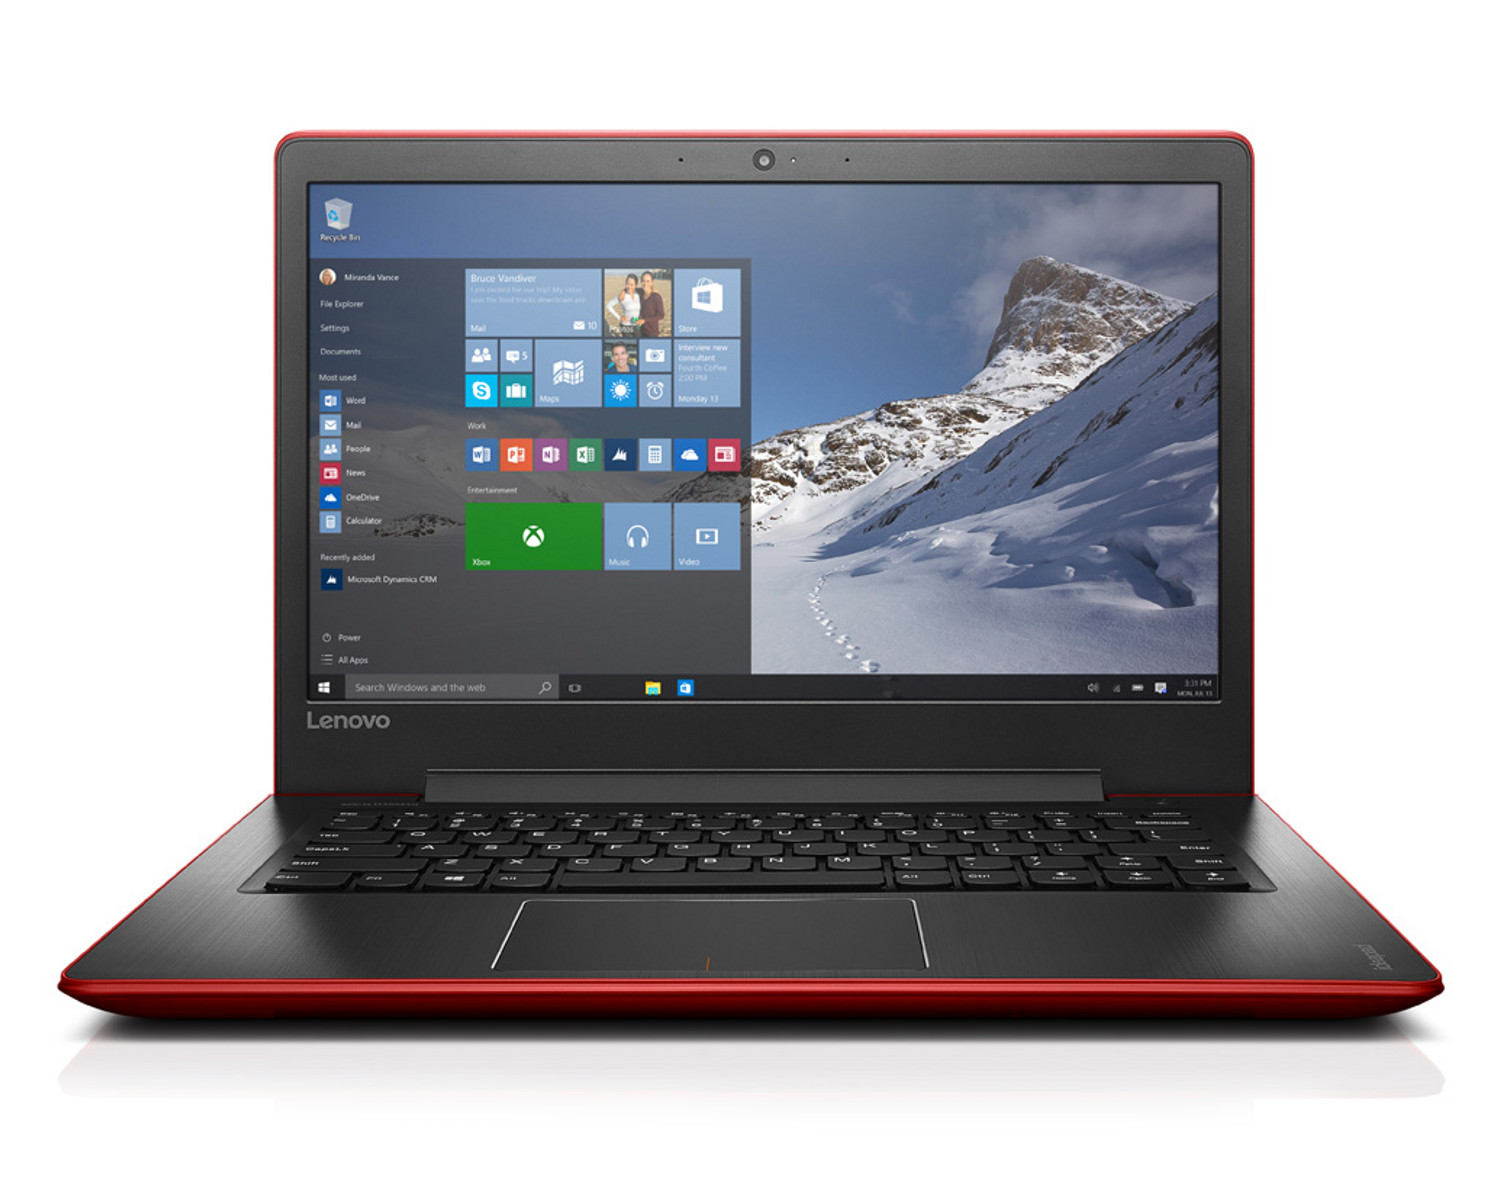 lenovo lenovo ideapad 510s 14isk rouge ordinateur por ordinateurpascher. Black Bedroom Furniture Sets. Home Design Ideas